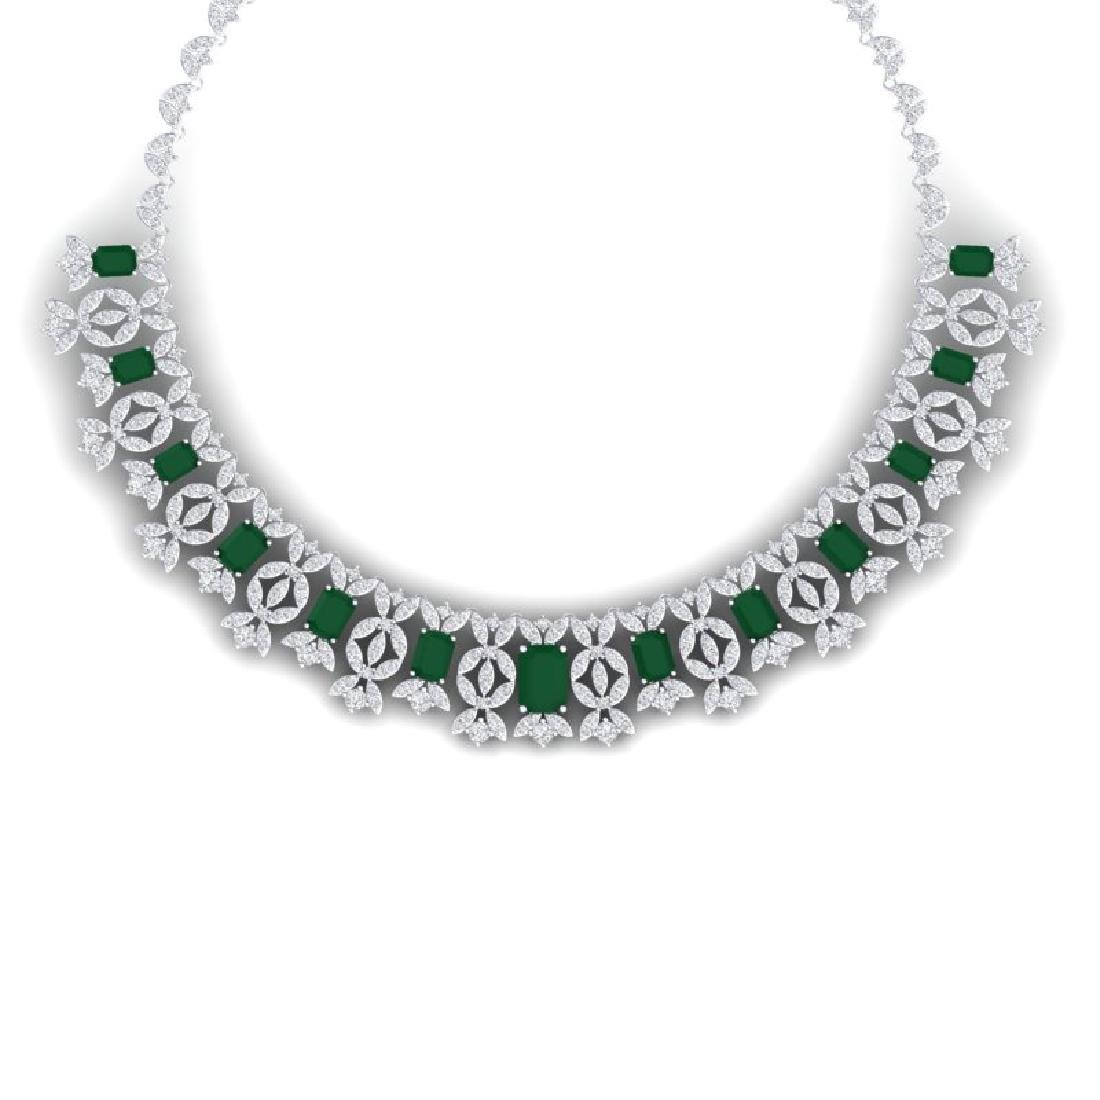 50.44 CTW Royalty Emerald & VS Diamond Necklace 18K